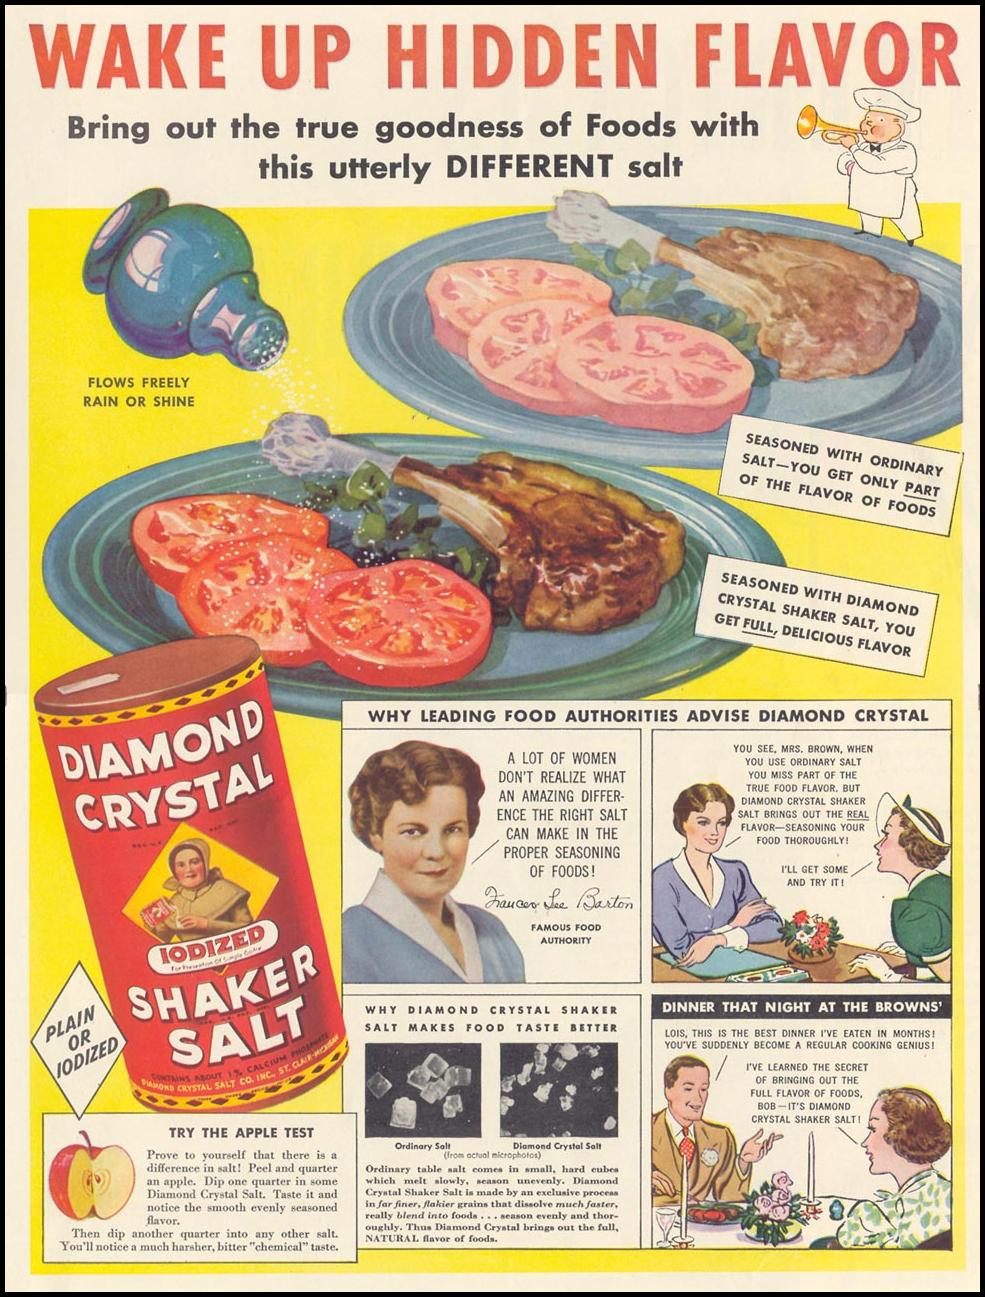 DIAMOND CRYSTAL IODIZED SHAKER SALT LIFE 07/26/1937